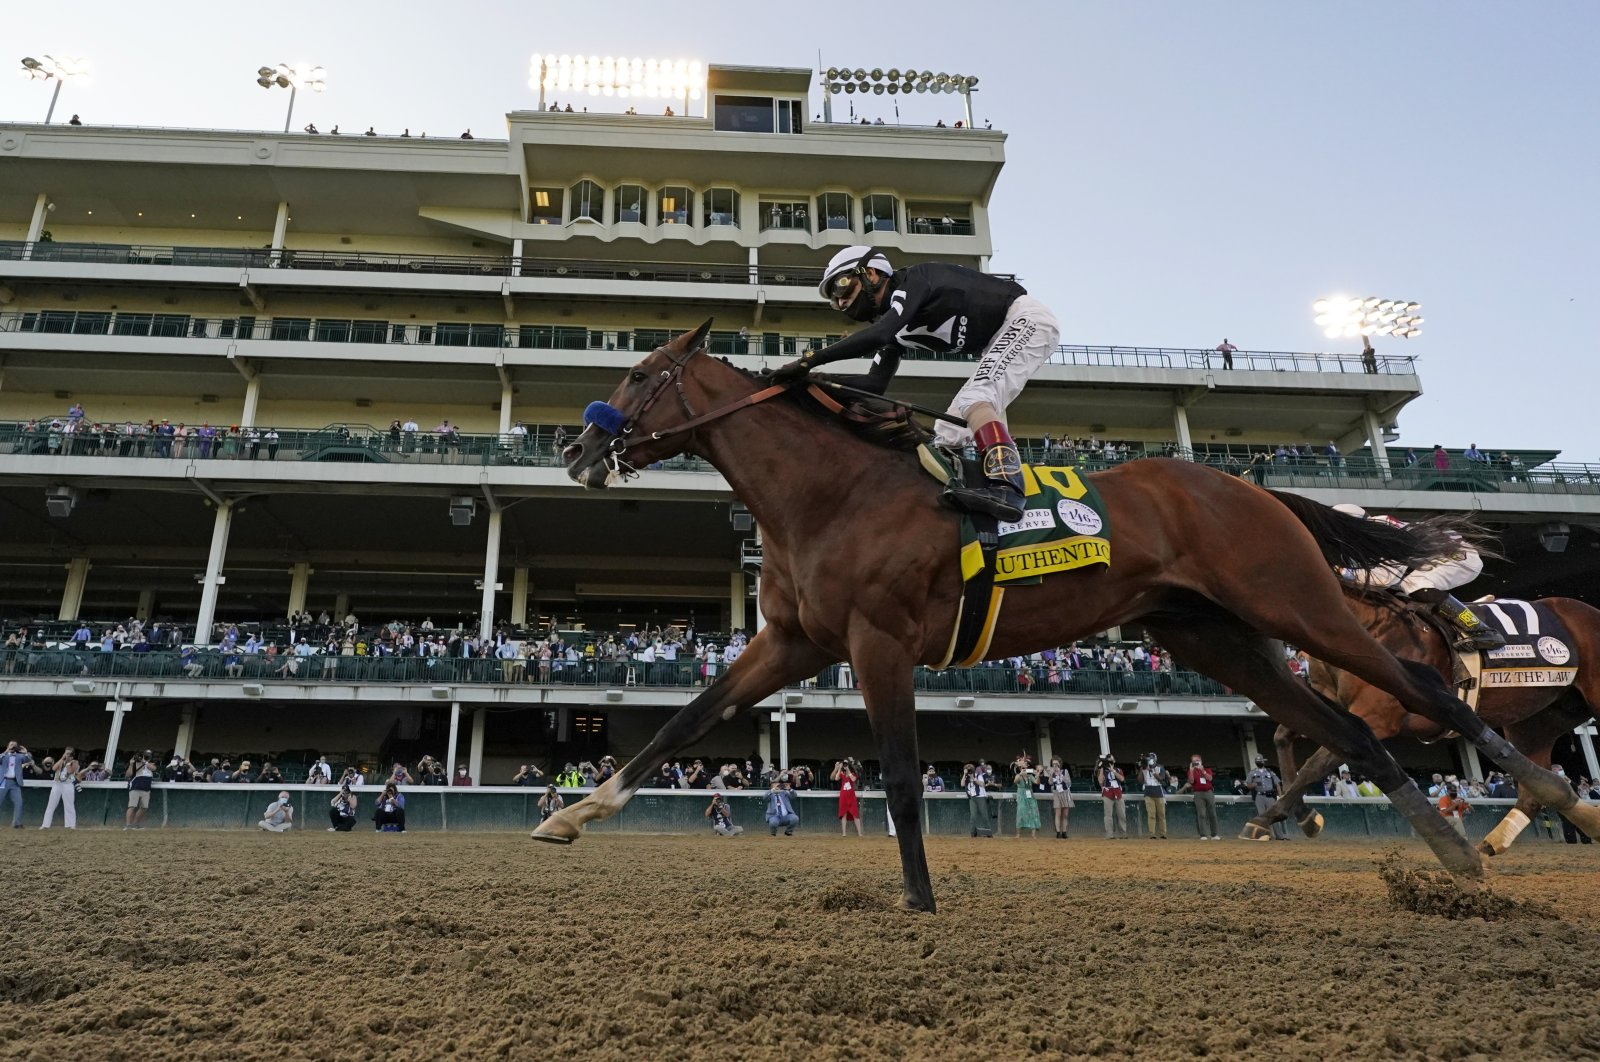 Jockey John Velazquez riding Authentic crosses the finish line to win the 146th running of the Kentucky Derby in Louisville, Kentucky, Sept. 5, 2020. (AP Photo)